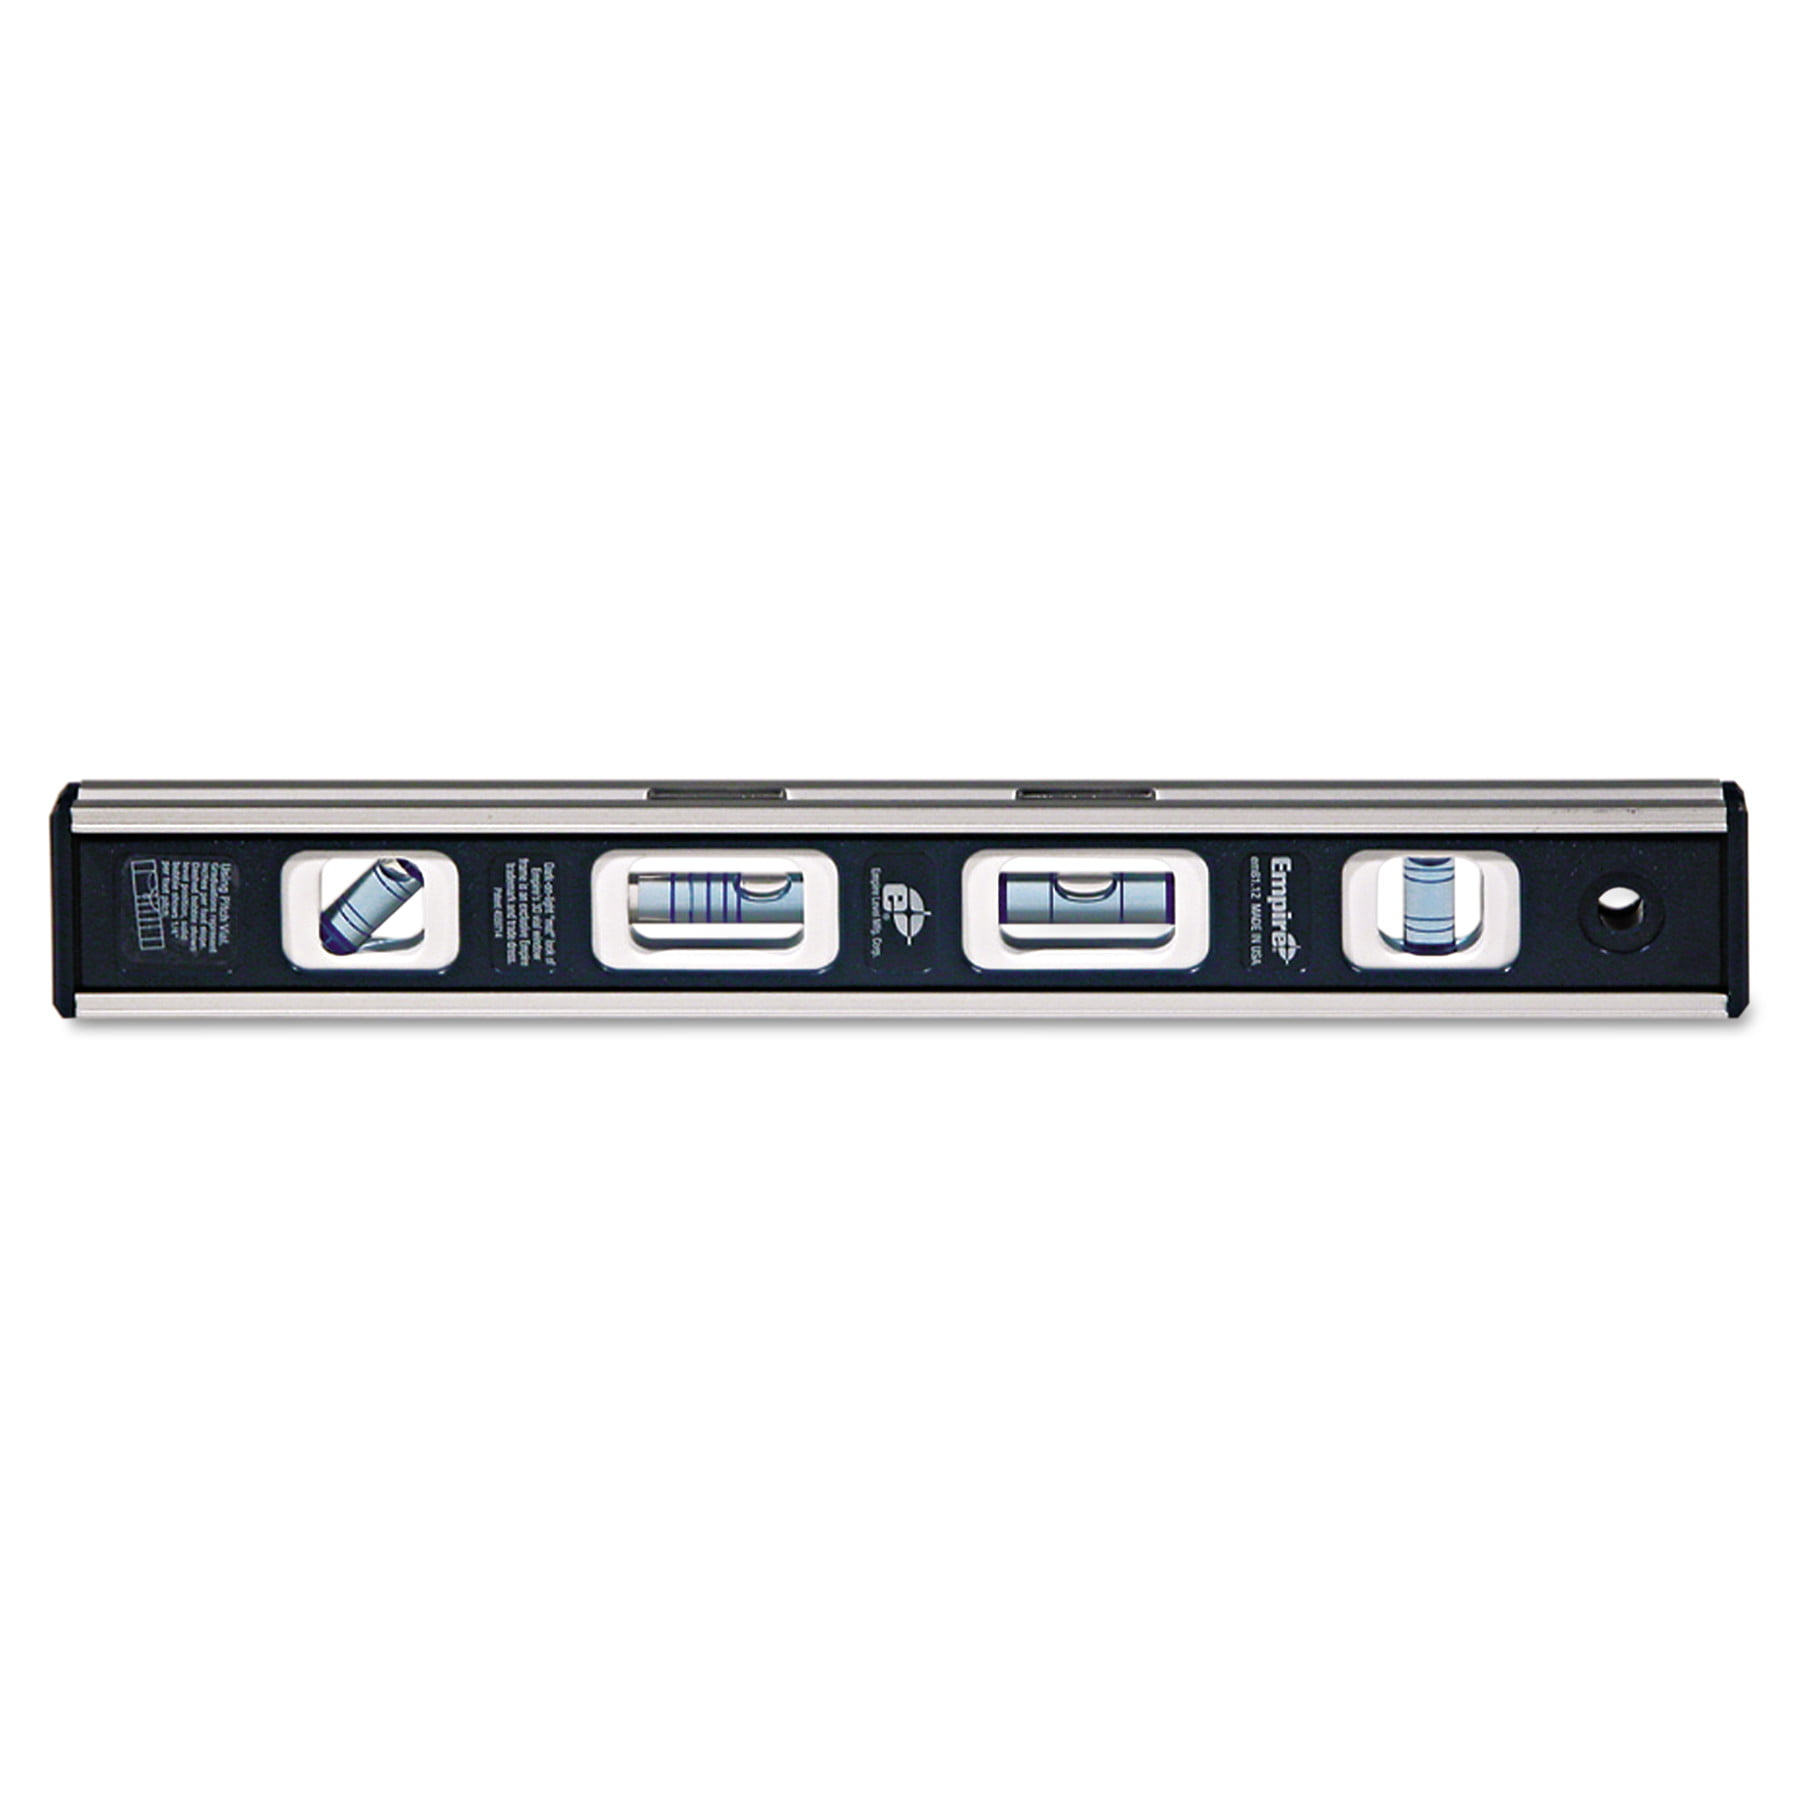 Empire 12 in. Magnetic Torpedo Level by EMPIRE LEVEL INCORPORATED